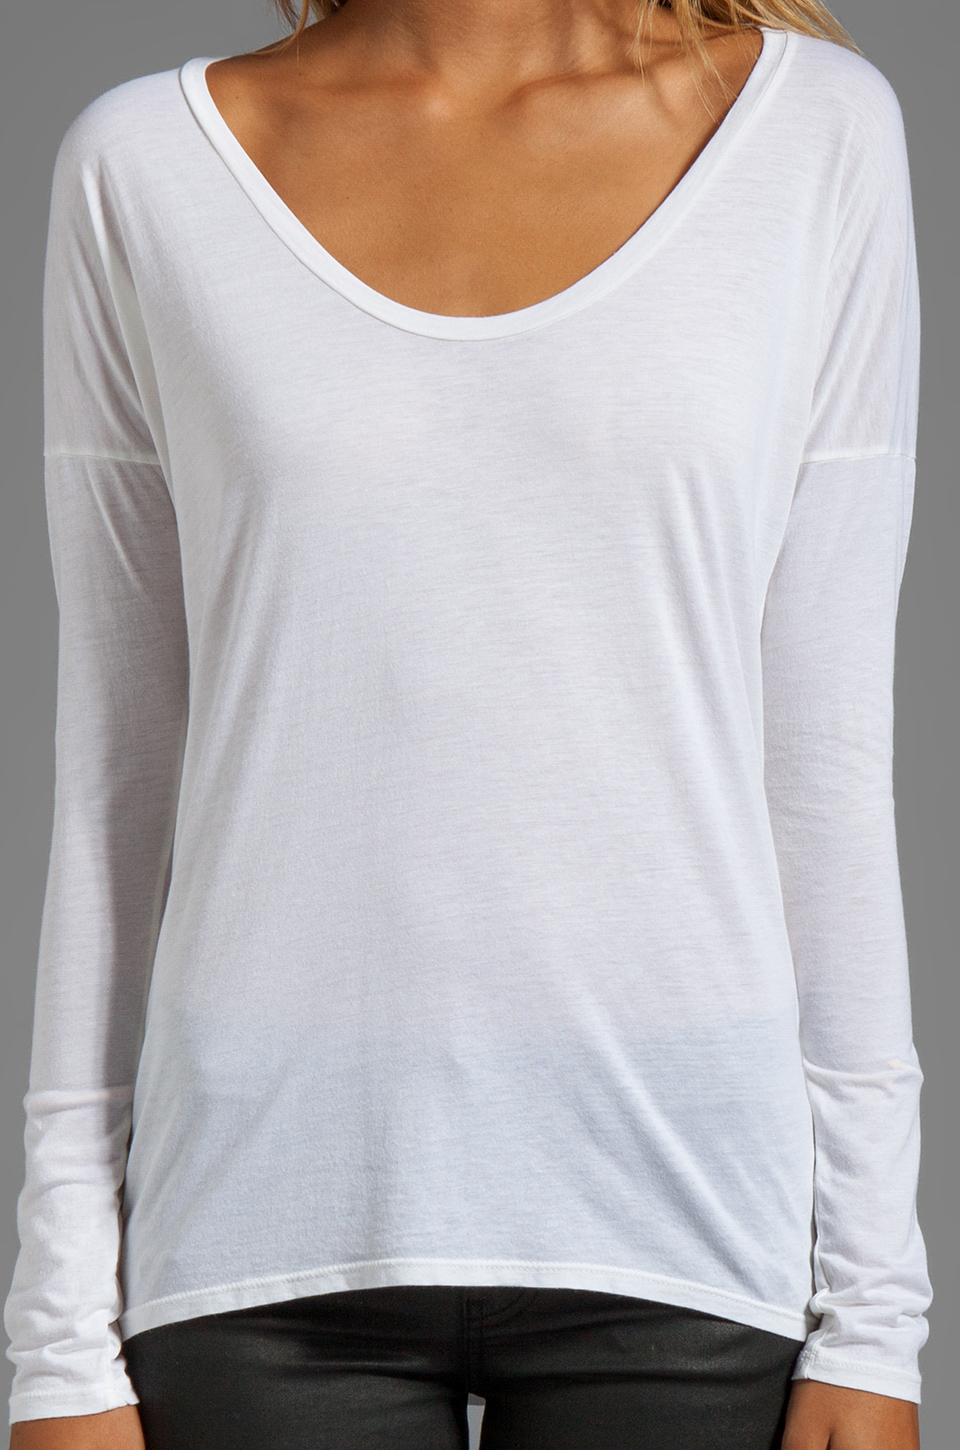 AG Adriano Goldschmied Scoop Tee in White